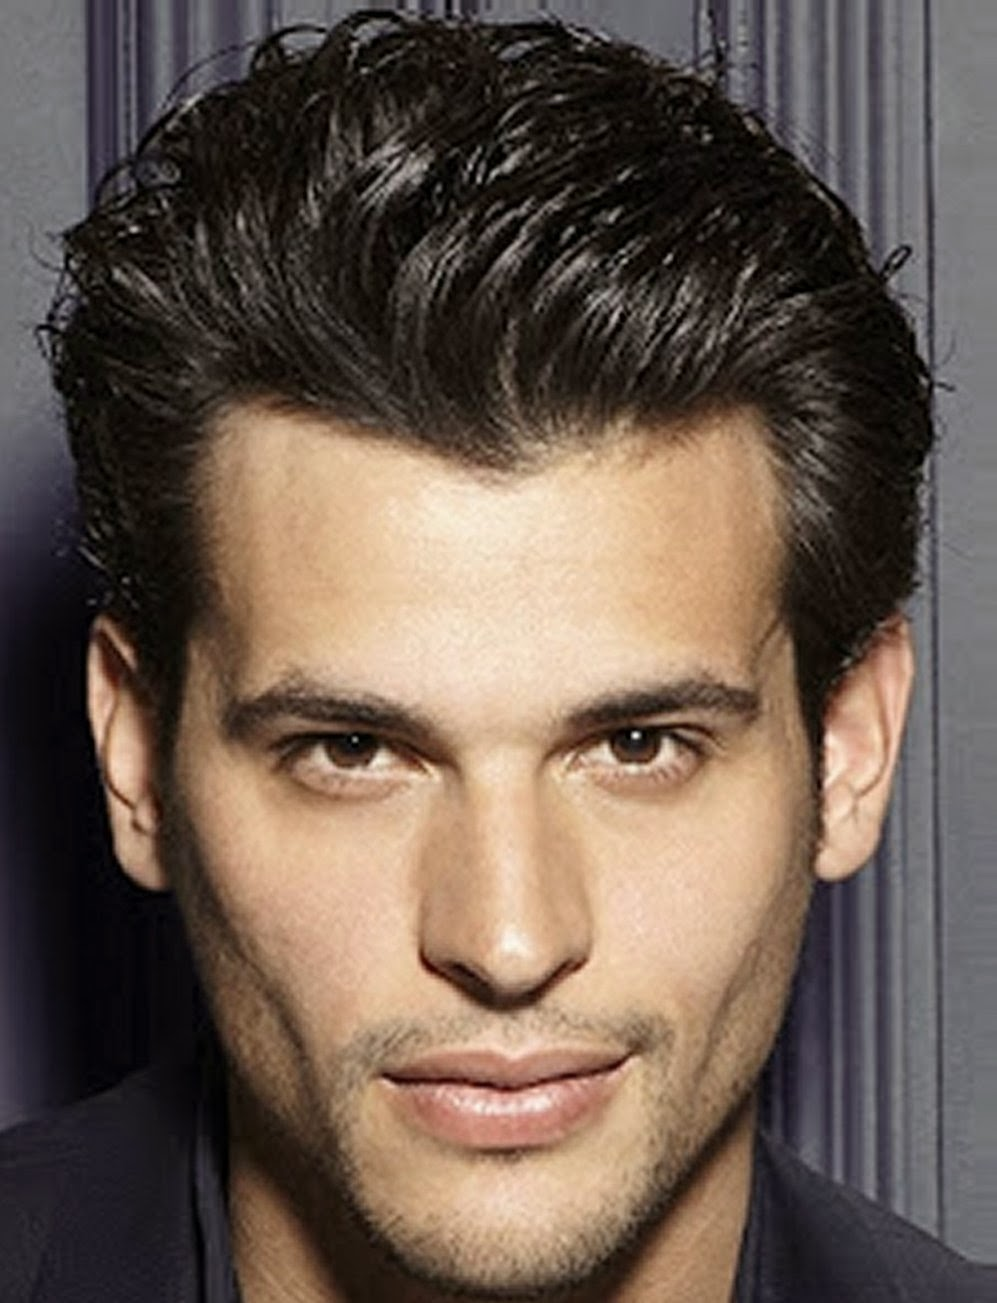 Stupendous Retro And Classic Hairstyles For Men Afro Haircuts Hairstyles For Men Maxibearus